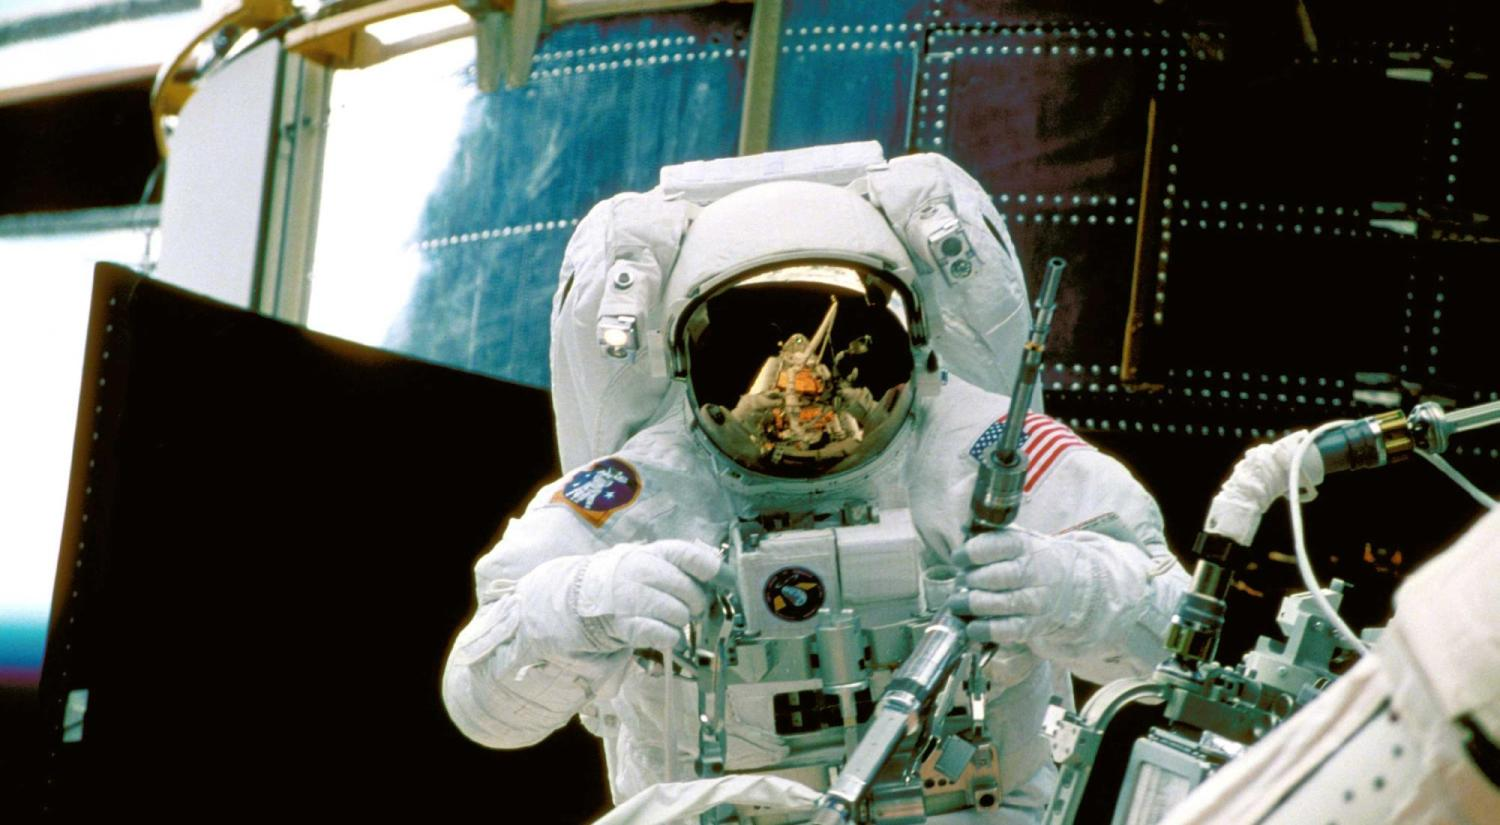 Astronaut dons a suit to work on the Hubble Space Telescope